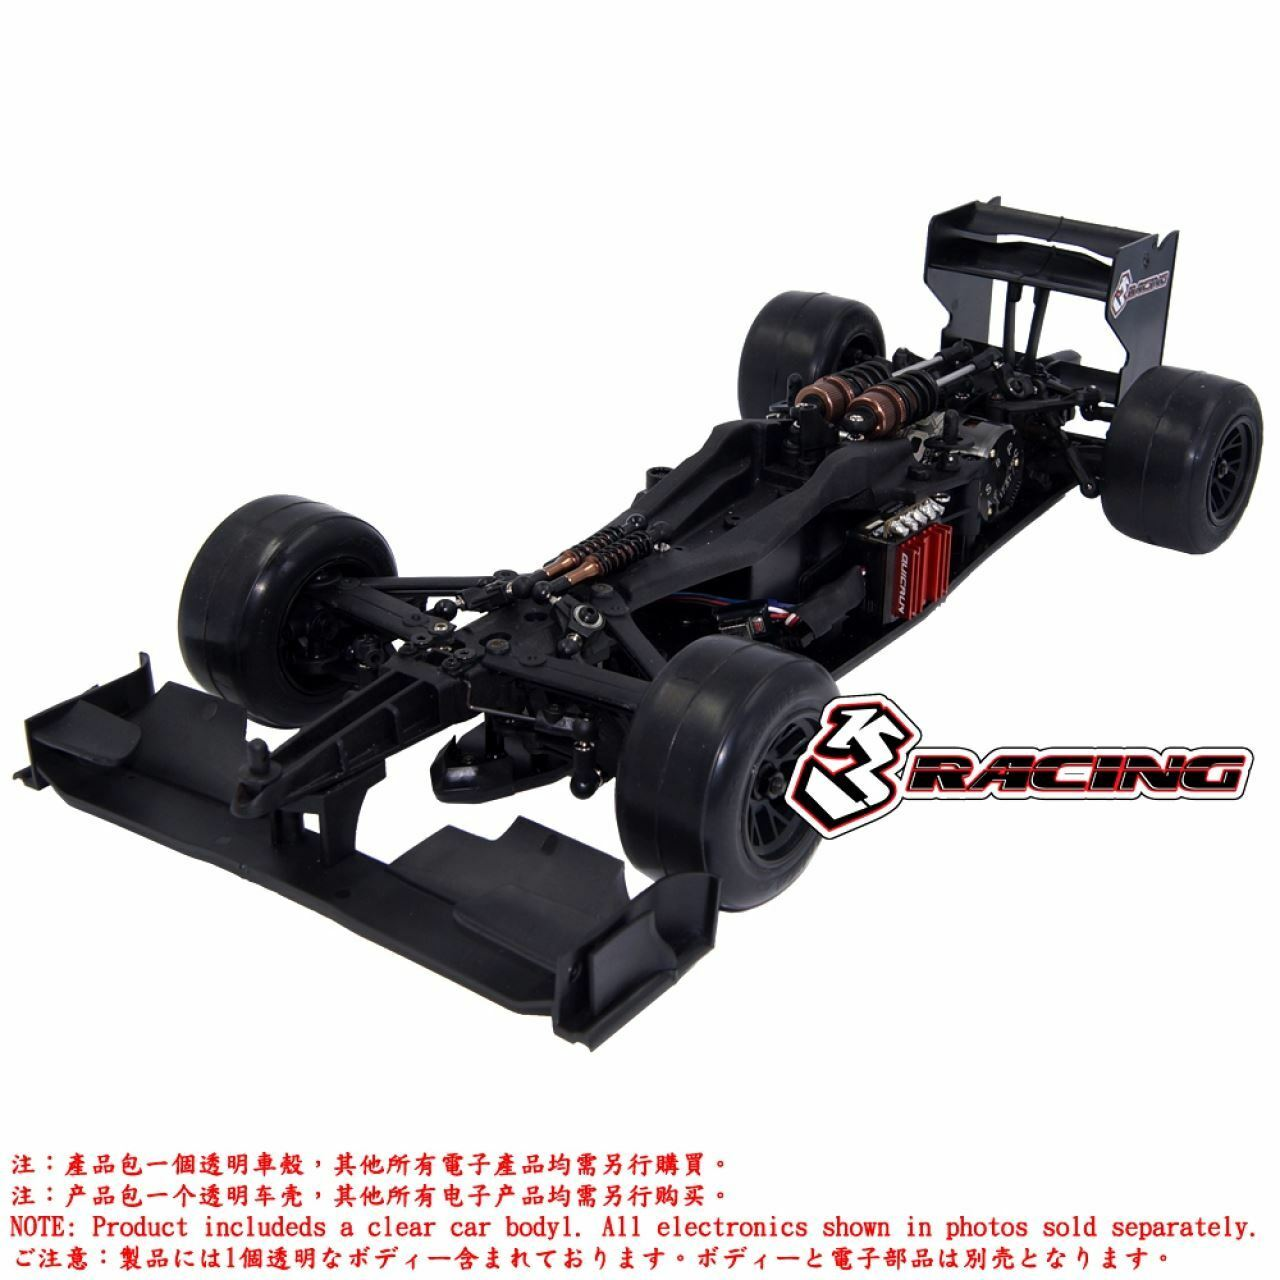 3 RACING Sakura FGX EVO 2018 1 10 Radio Control F-1 Formula 1 episodio Kit de coche con Lexan Body Set